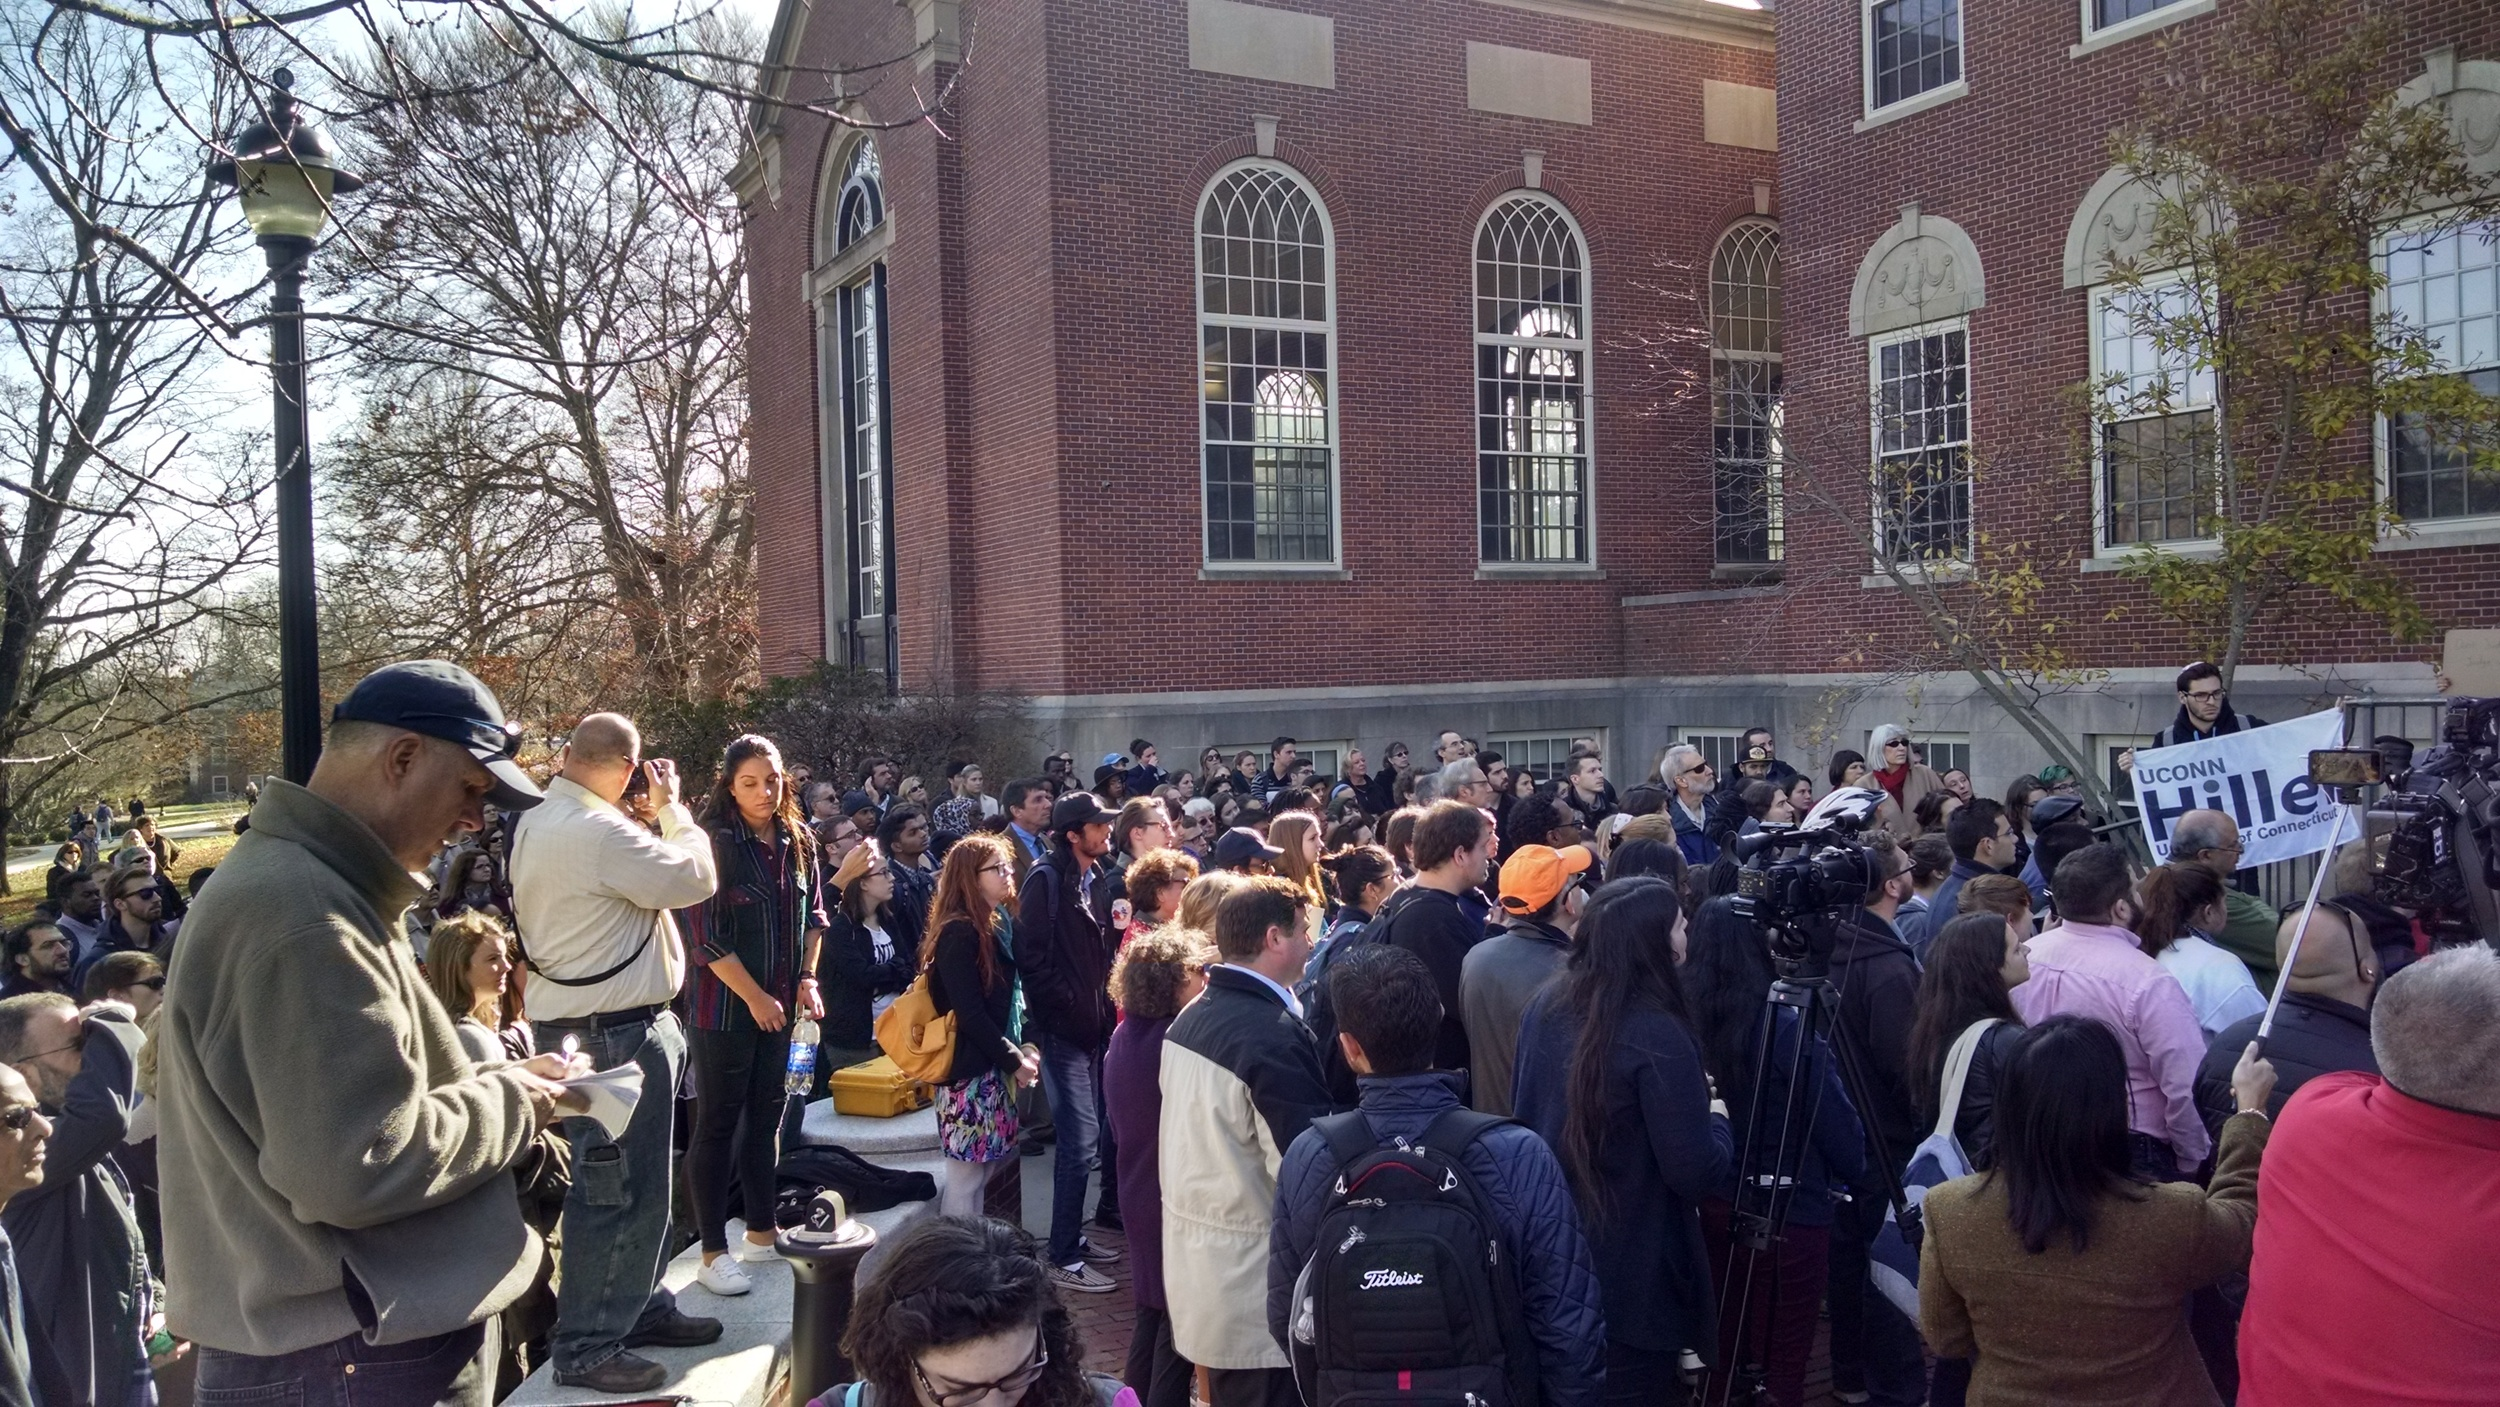 Students, faculty and administrators gathered outside of the Wilbur Cross building on Monday, Nov. 16, 2015 in a demonstration of solidarity against acts of hate on campus.Students addressed a crowd of several hundred gathered during the event.(Kyle Constable/The Daily Campus).